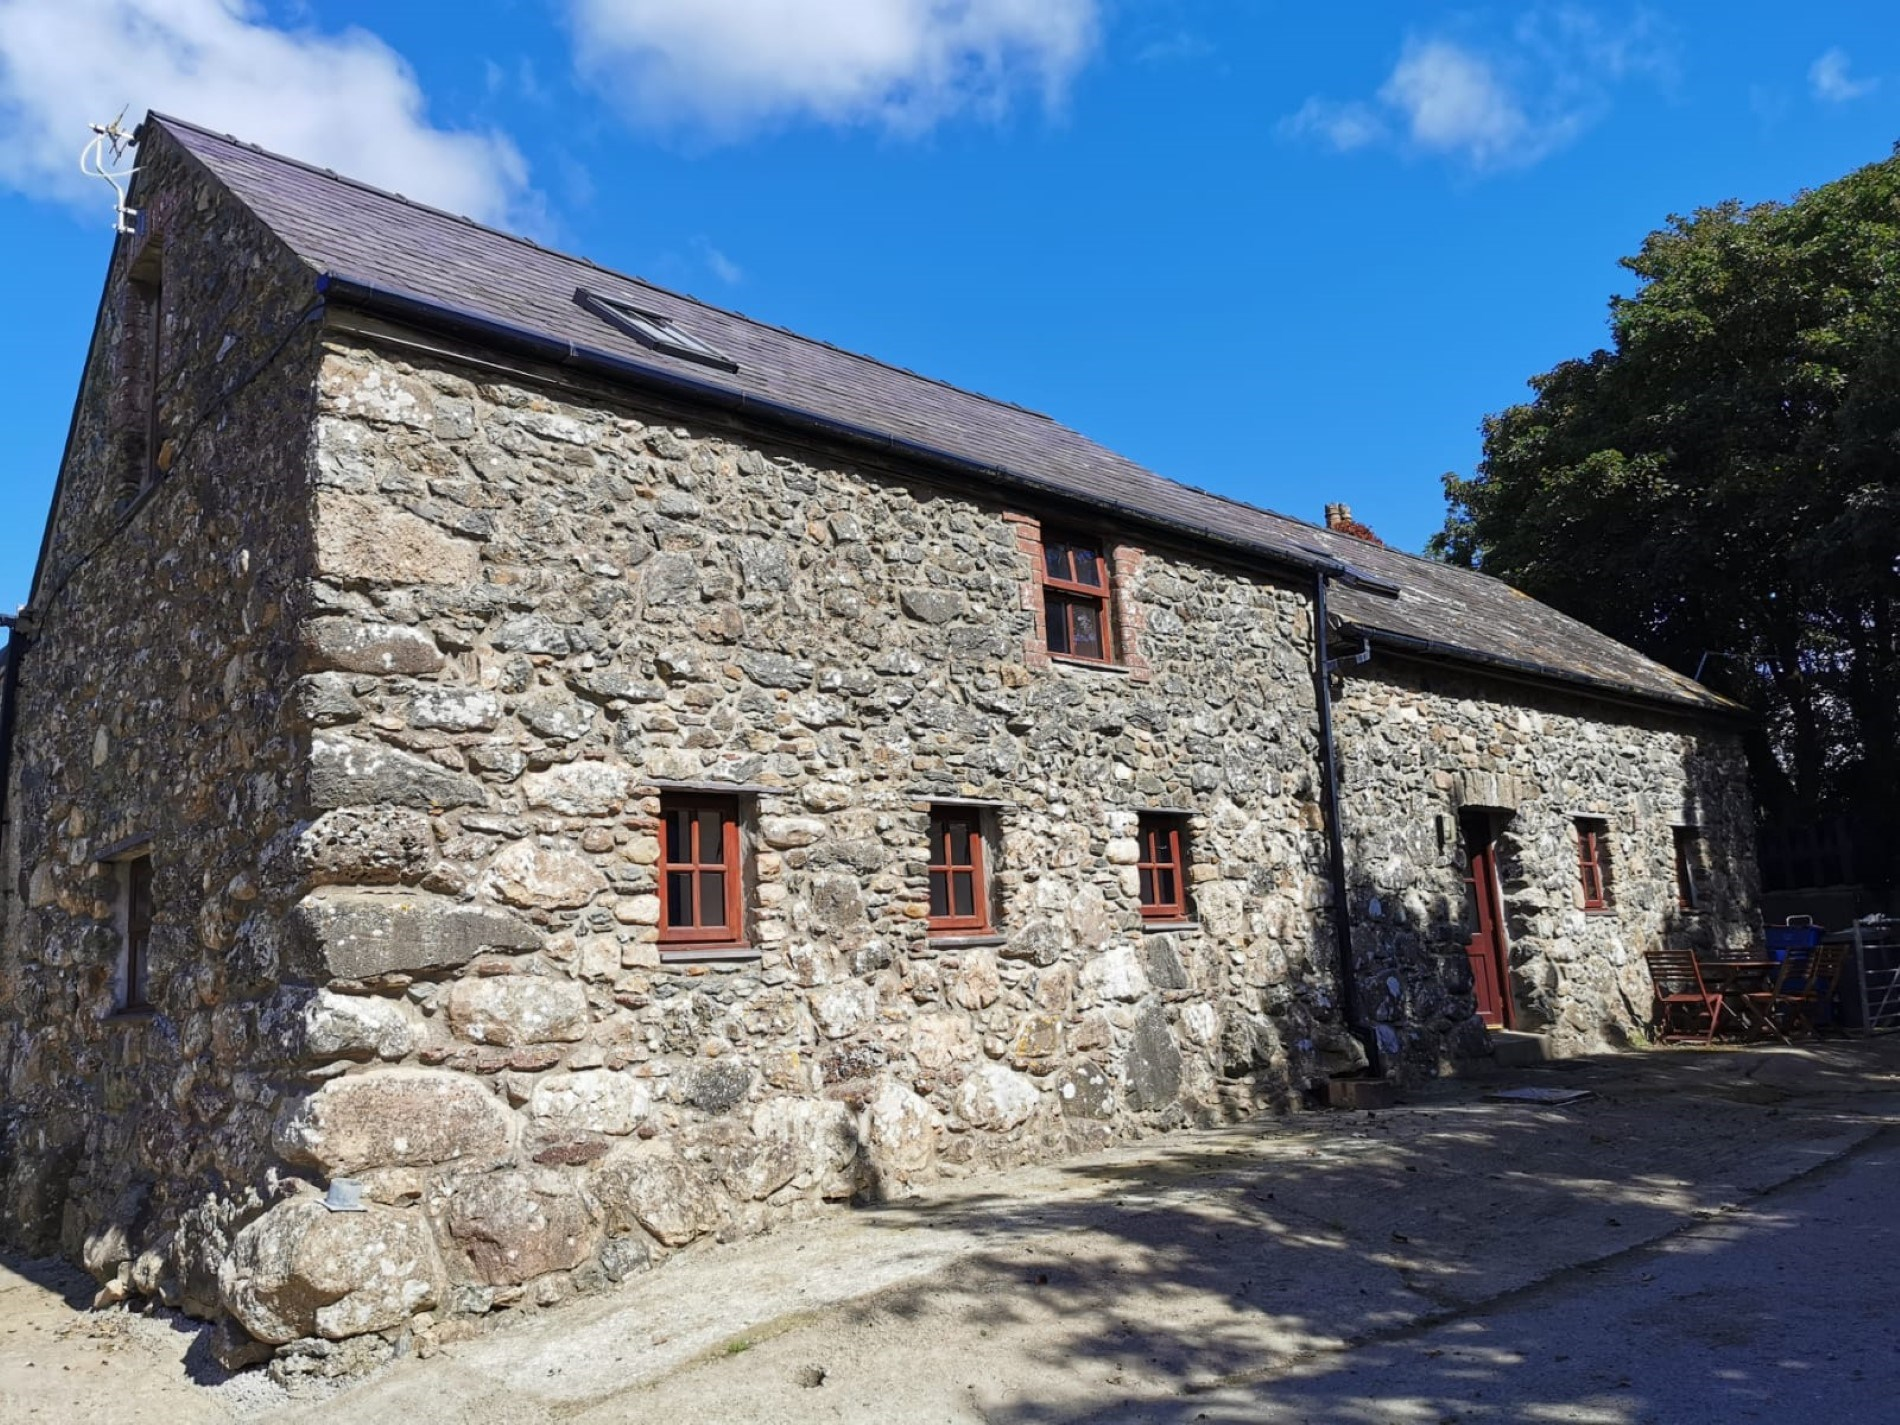 Ferienhaus in Anglesey